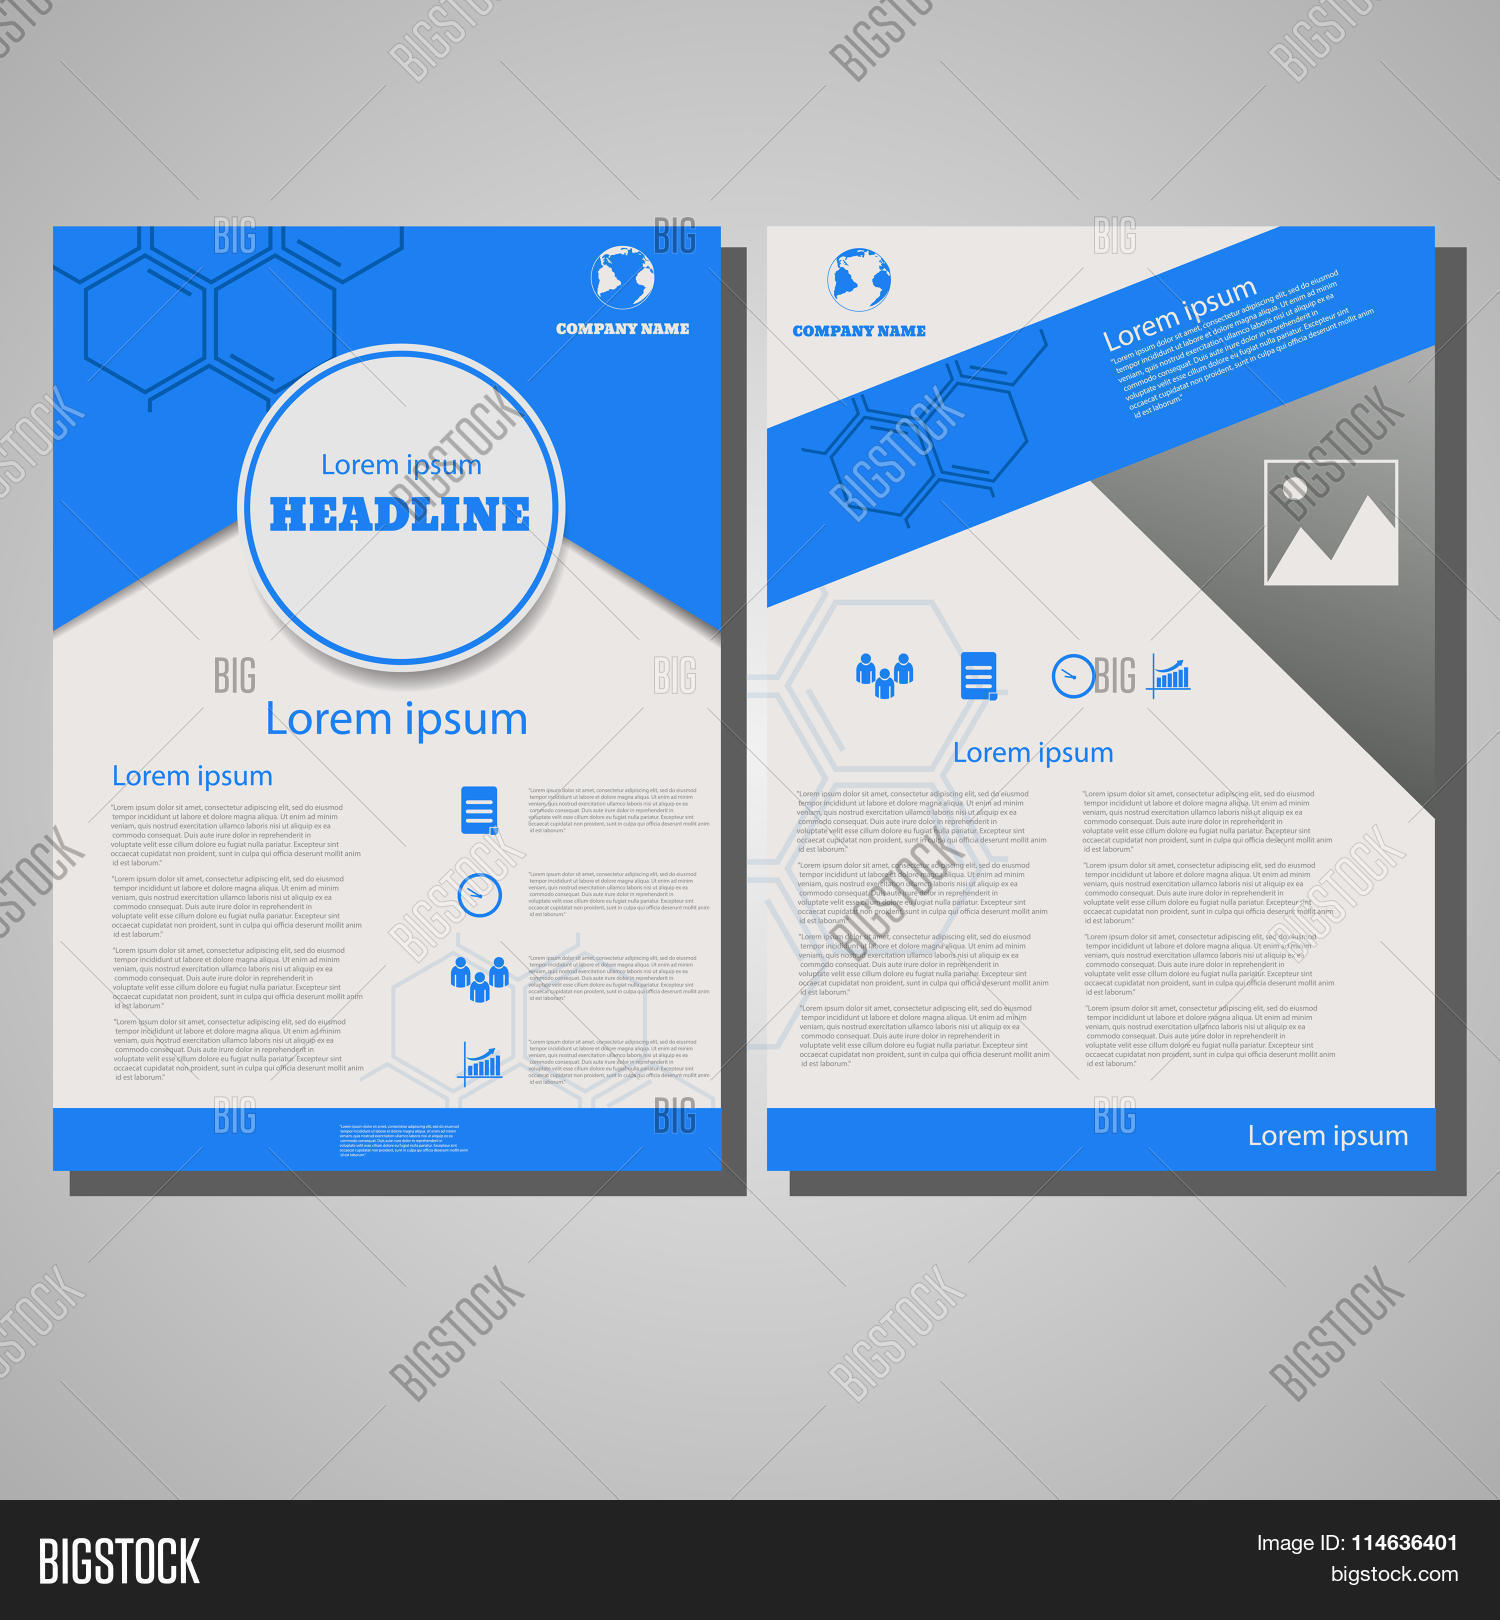 Generous 1 Page Resumes Thin 1 Week Calendar Template Flat 1099 Agreement Template 11 Vuze Search Templates Old 15 Year Old Resume Example Soft2 Week Notice Templates Blue Colour Brochure Flyer Design Layout Template, Size A4, Front ..